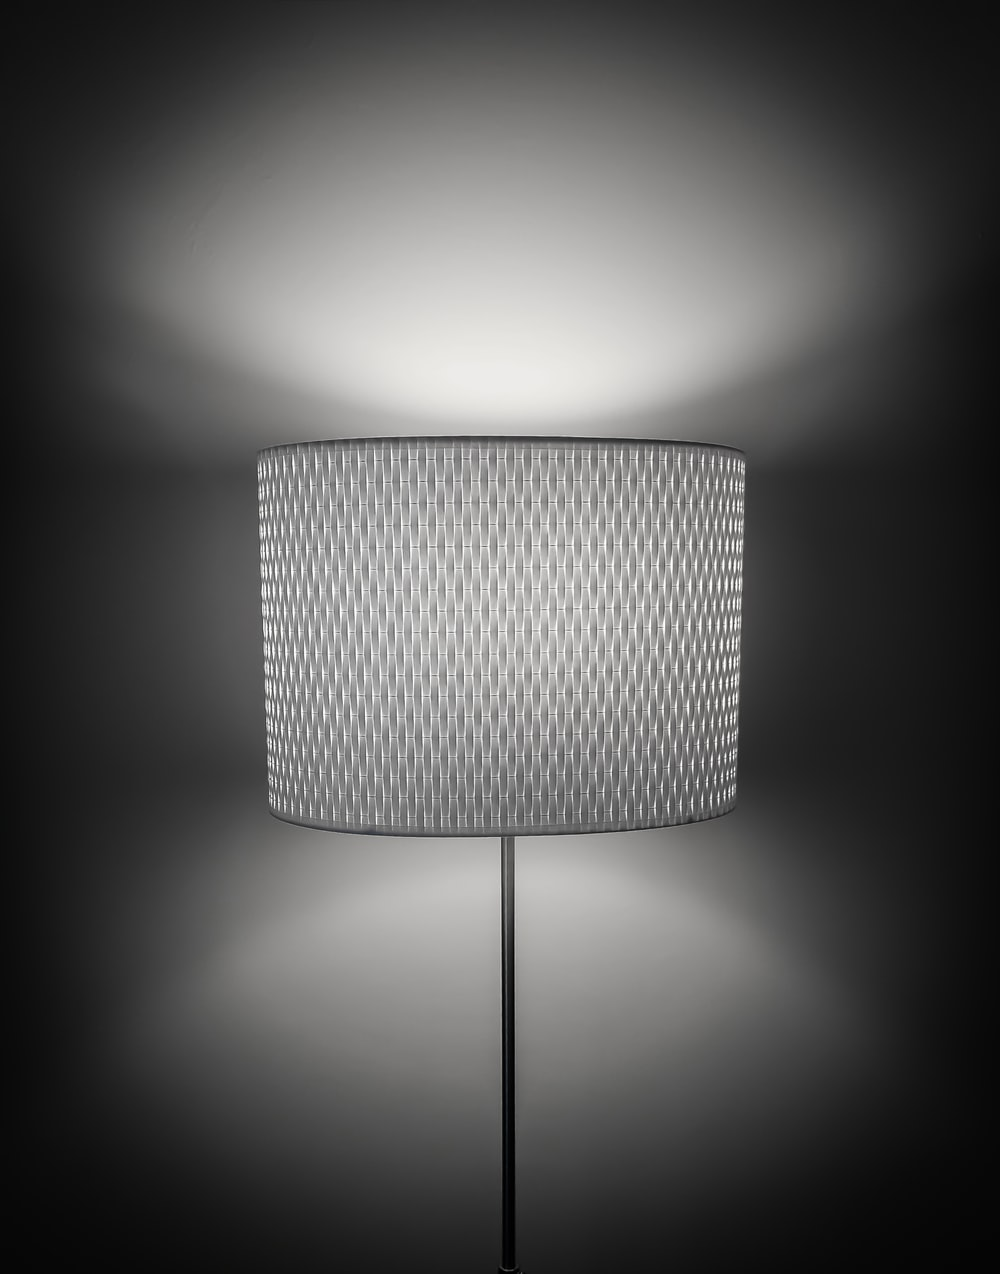 lamp on grayscale photography